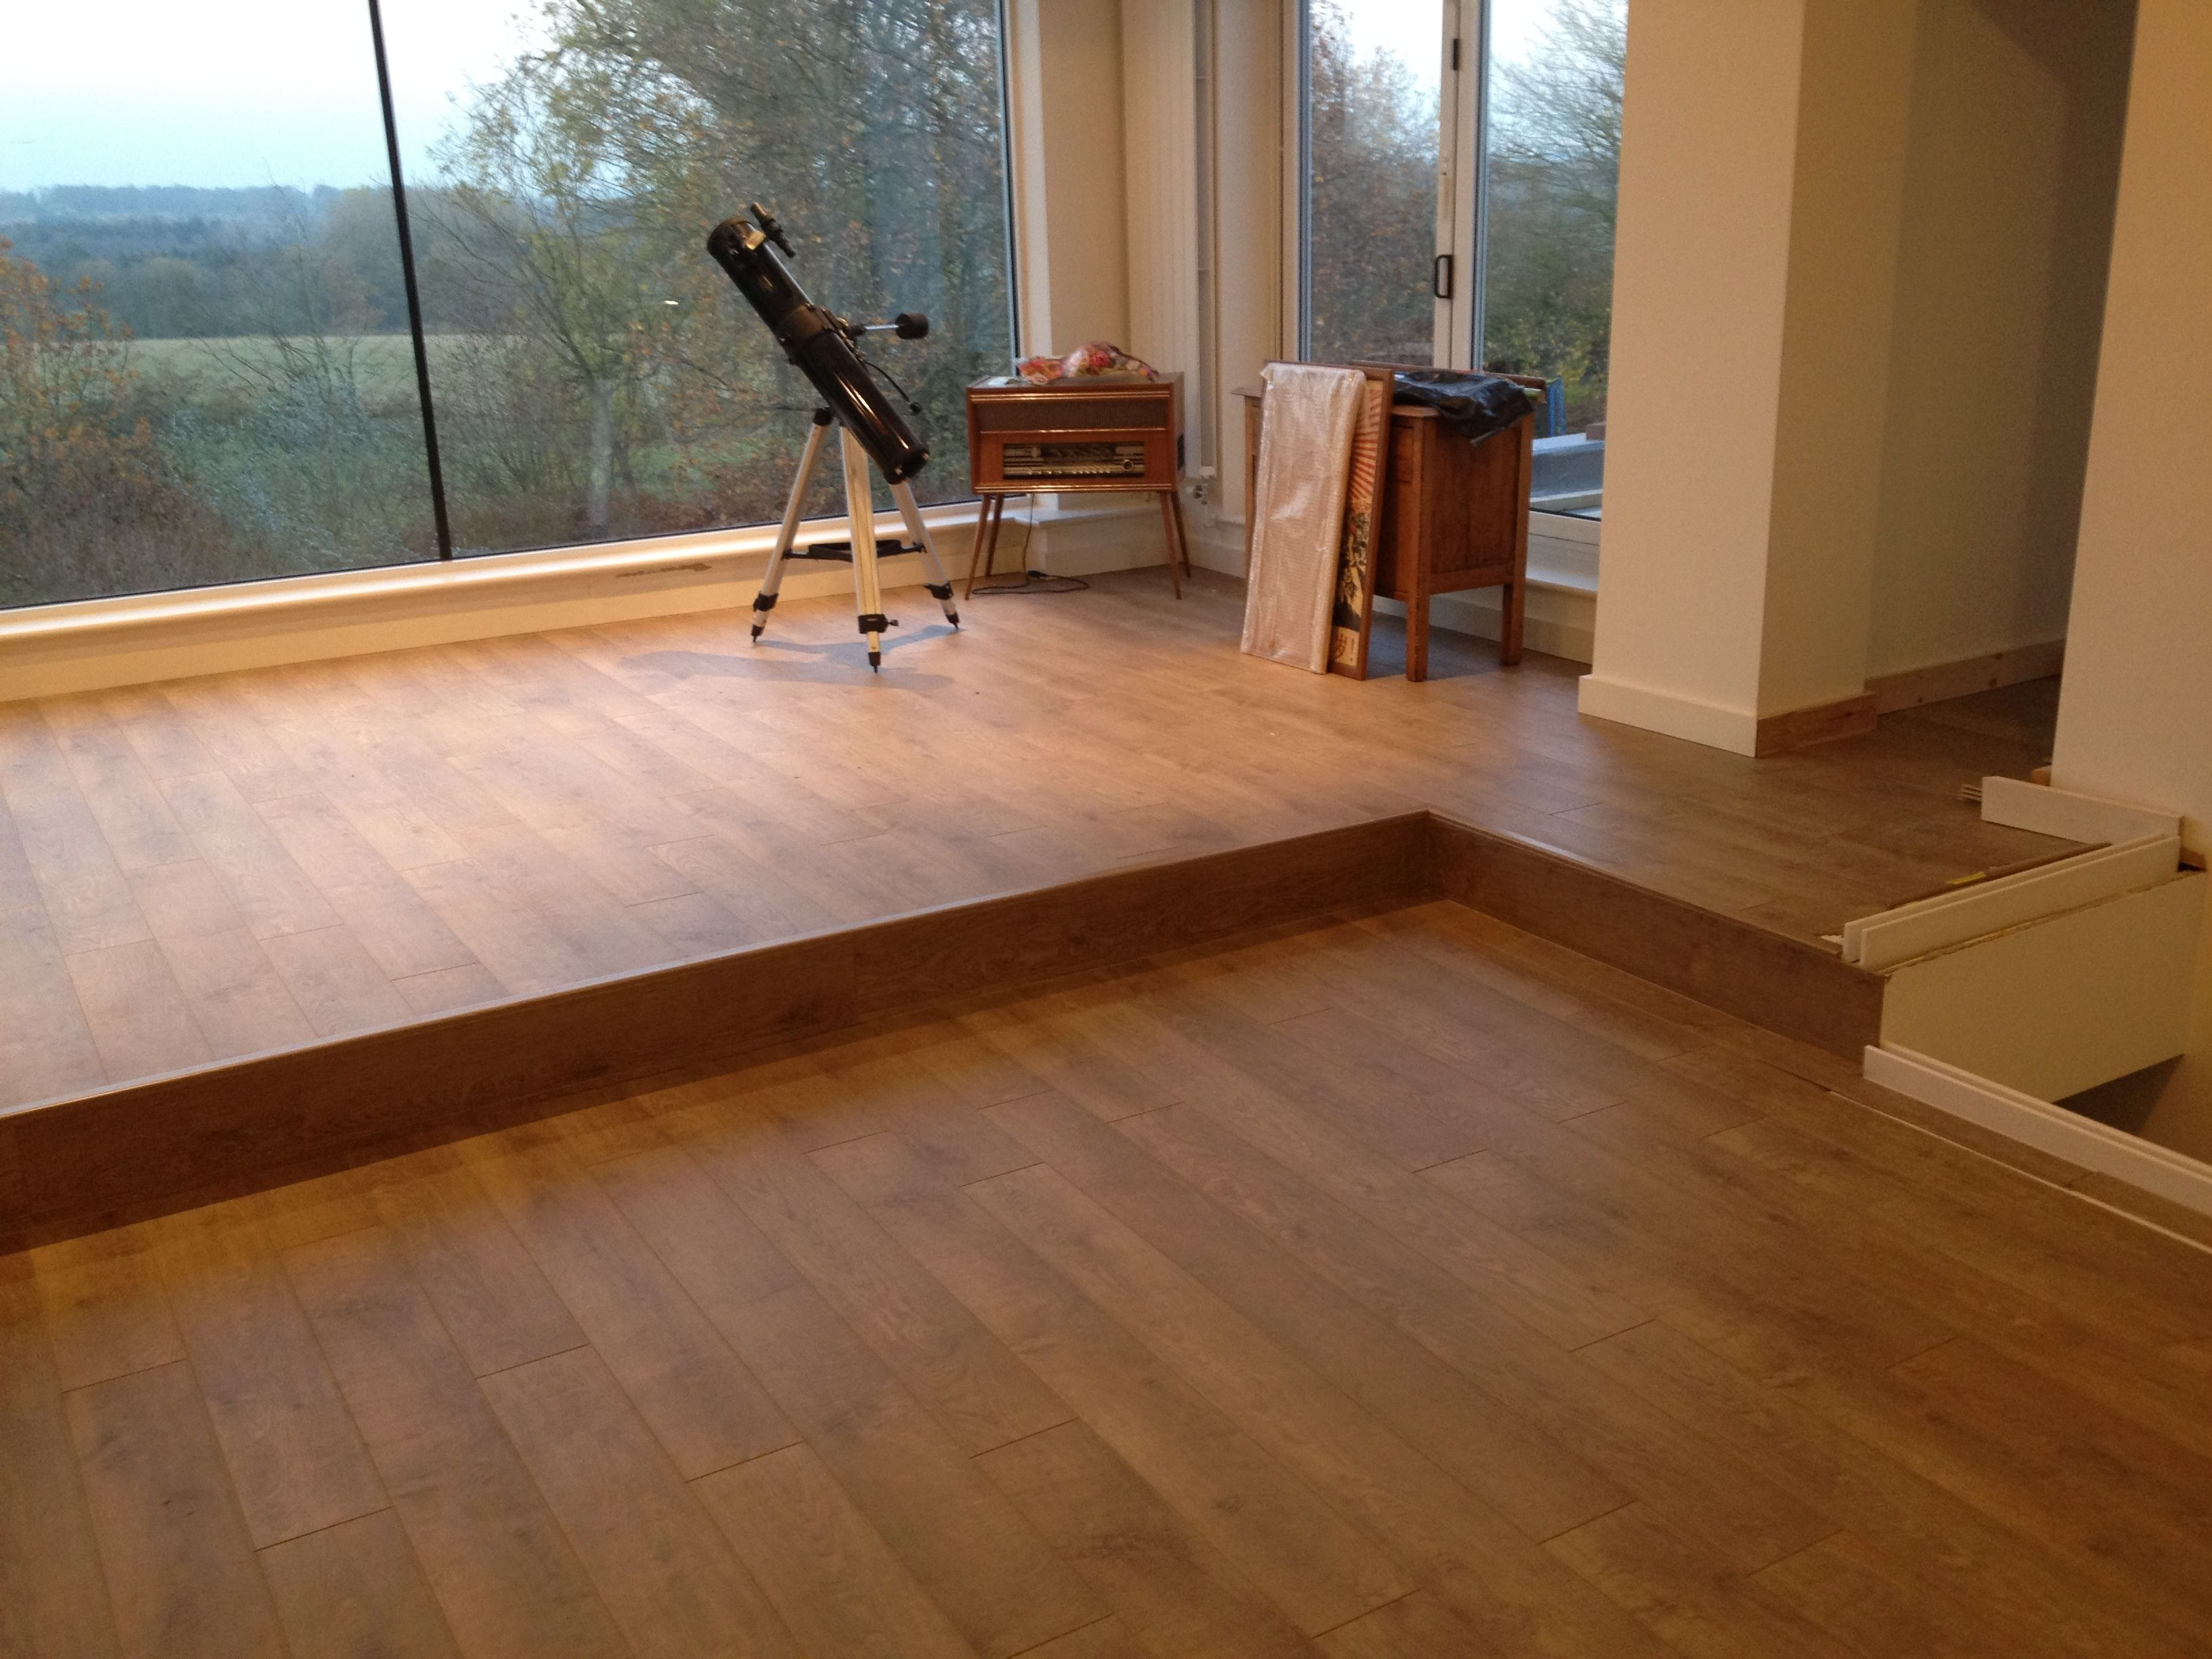 Fresco Of Most Durable Hardwood Floor Will Make Your House Appears With Awe